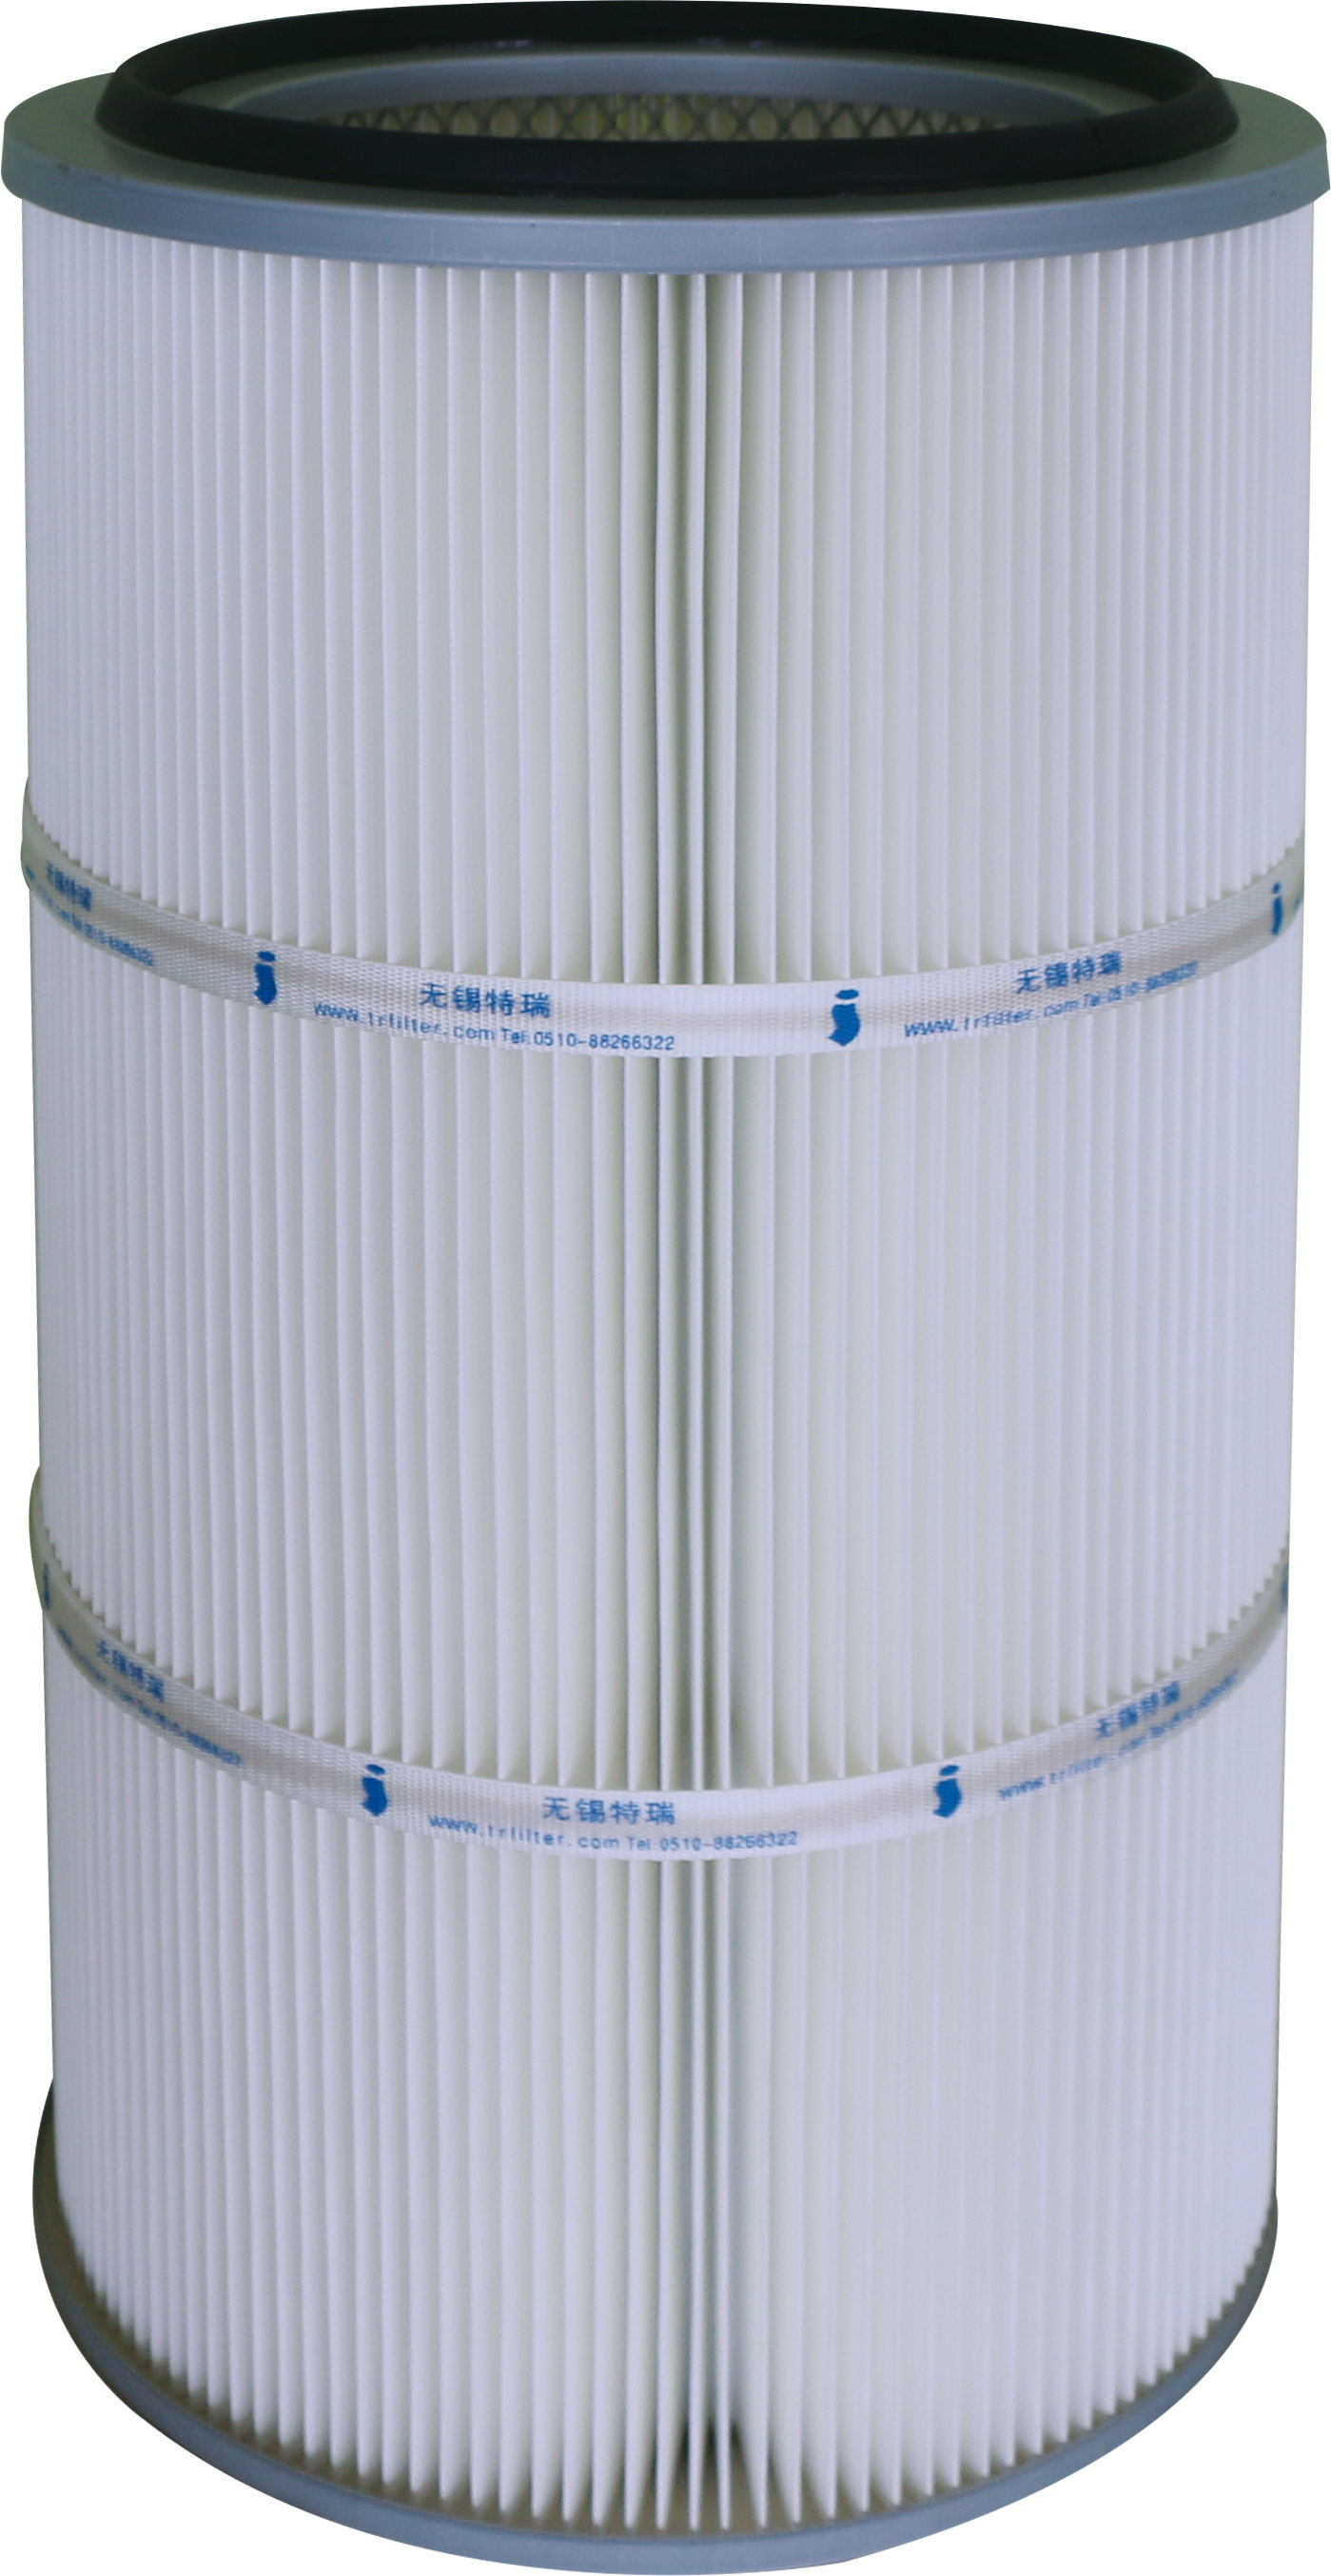 Welding Smoking Air Filter Cartridge with PTFE Membrane